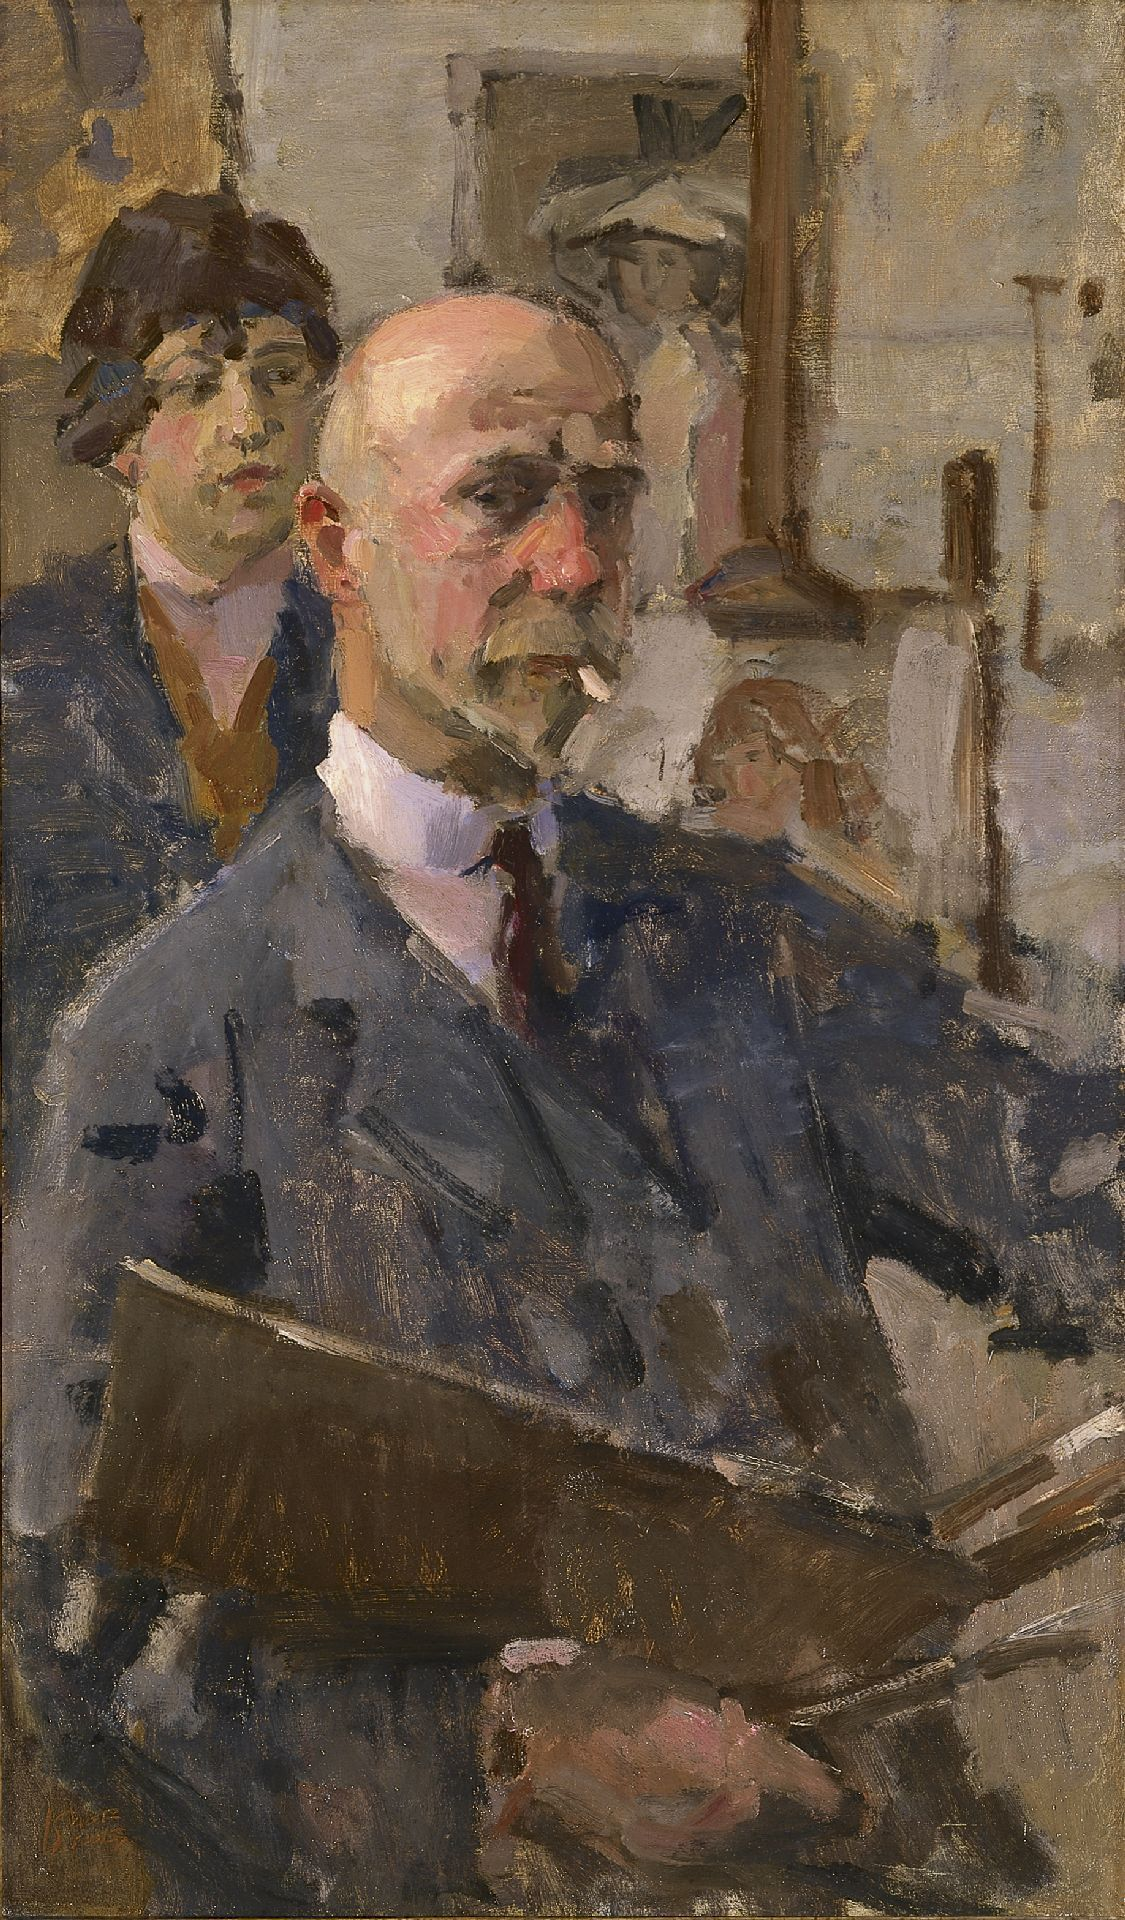 Isaac Israels (1865-1934) Paintings for Sale